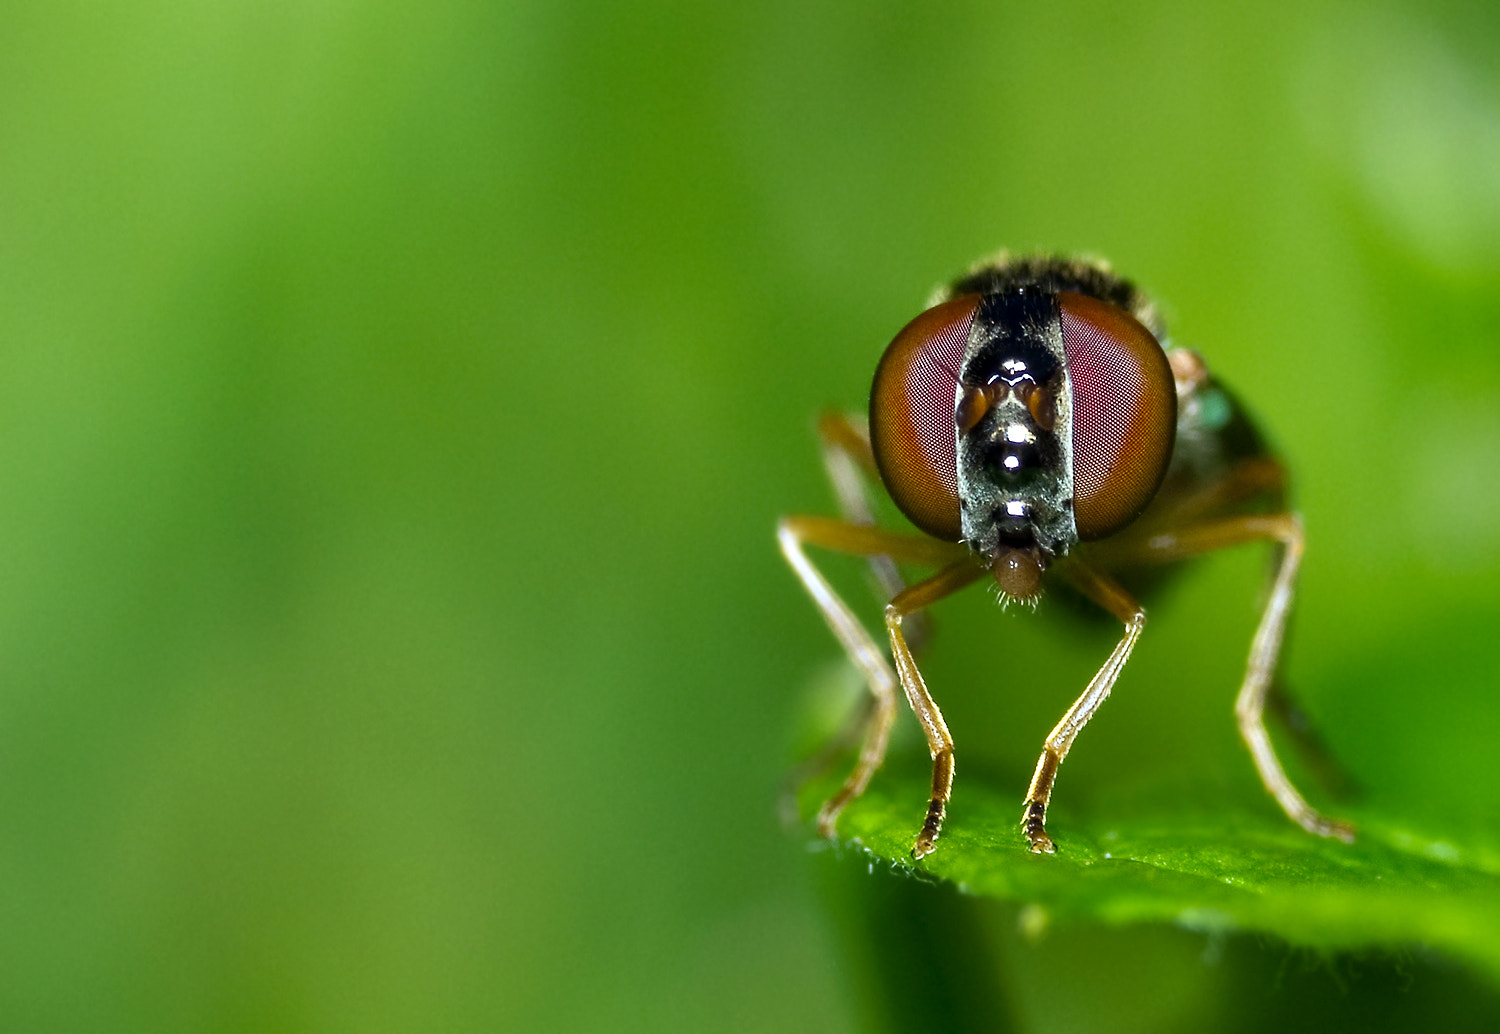 Photograph In The Green by Chris Ruijter on 500px